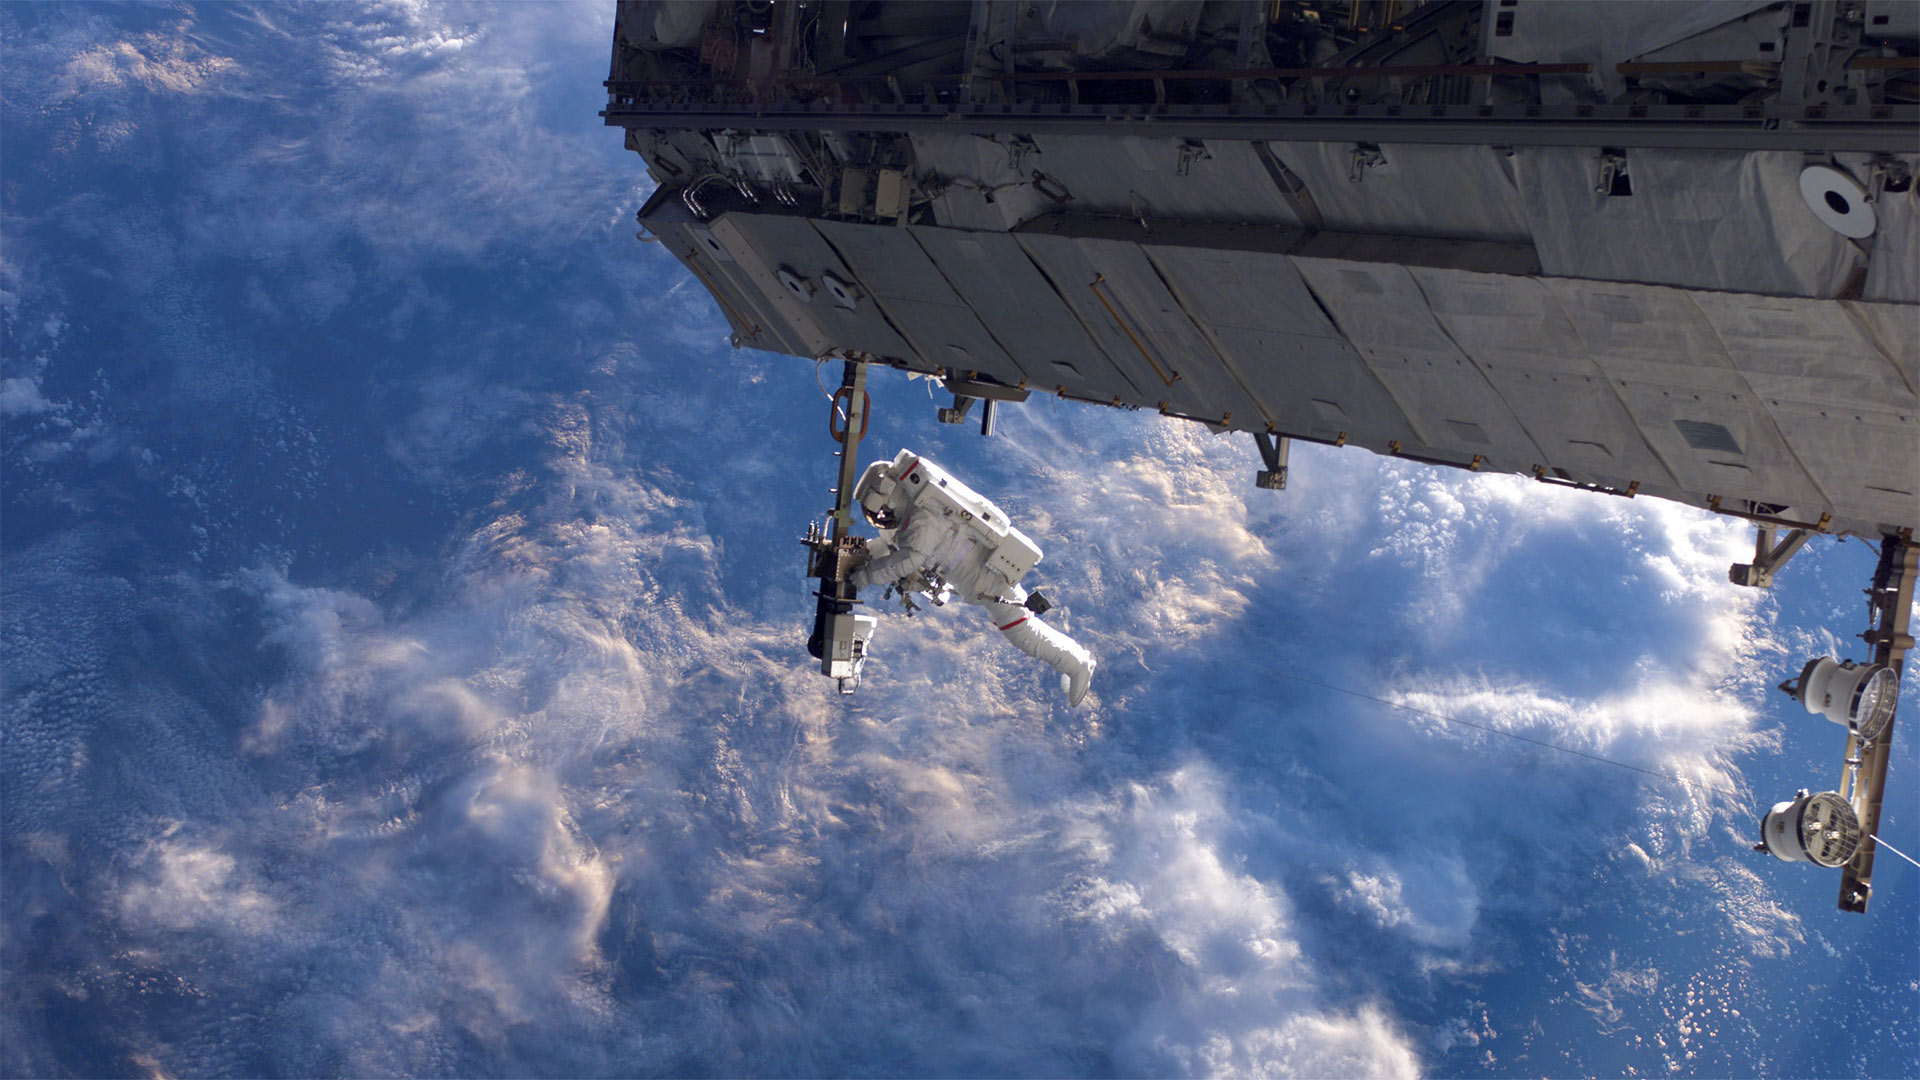 NASA astronaut works on the International Space Station during a spacewalk in 2006 (© NASA)(Bing United States)